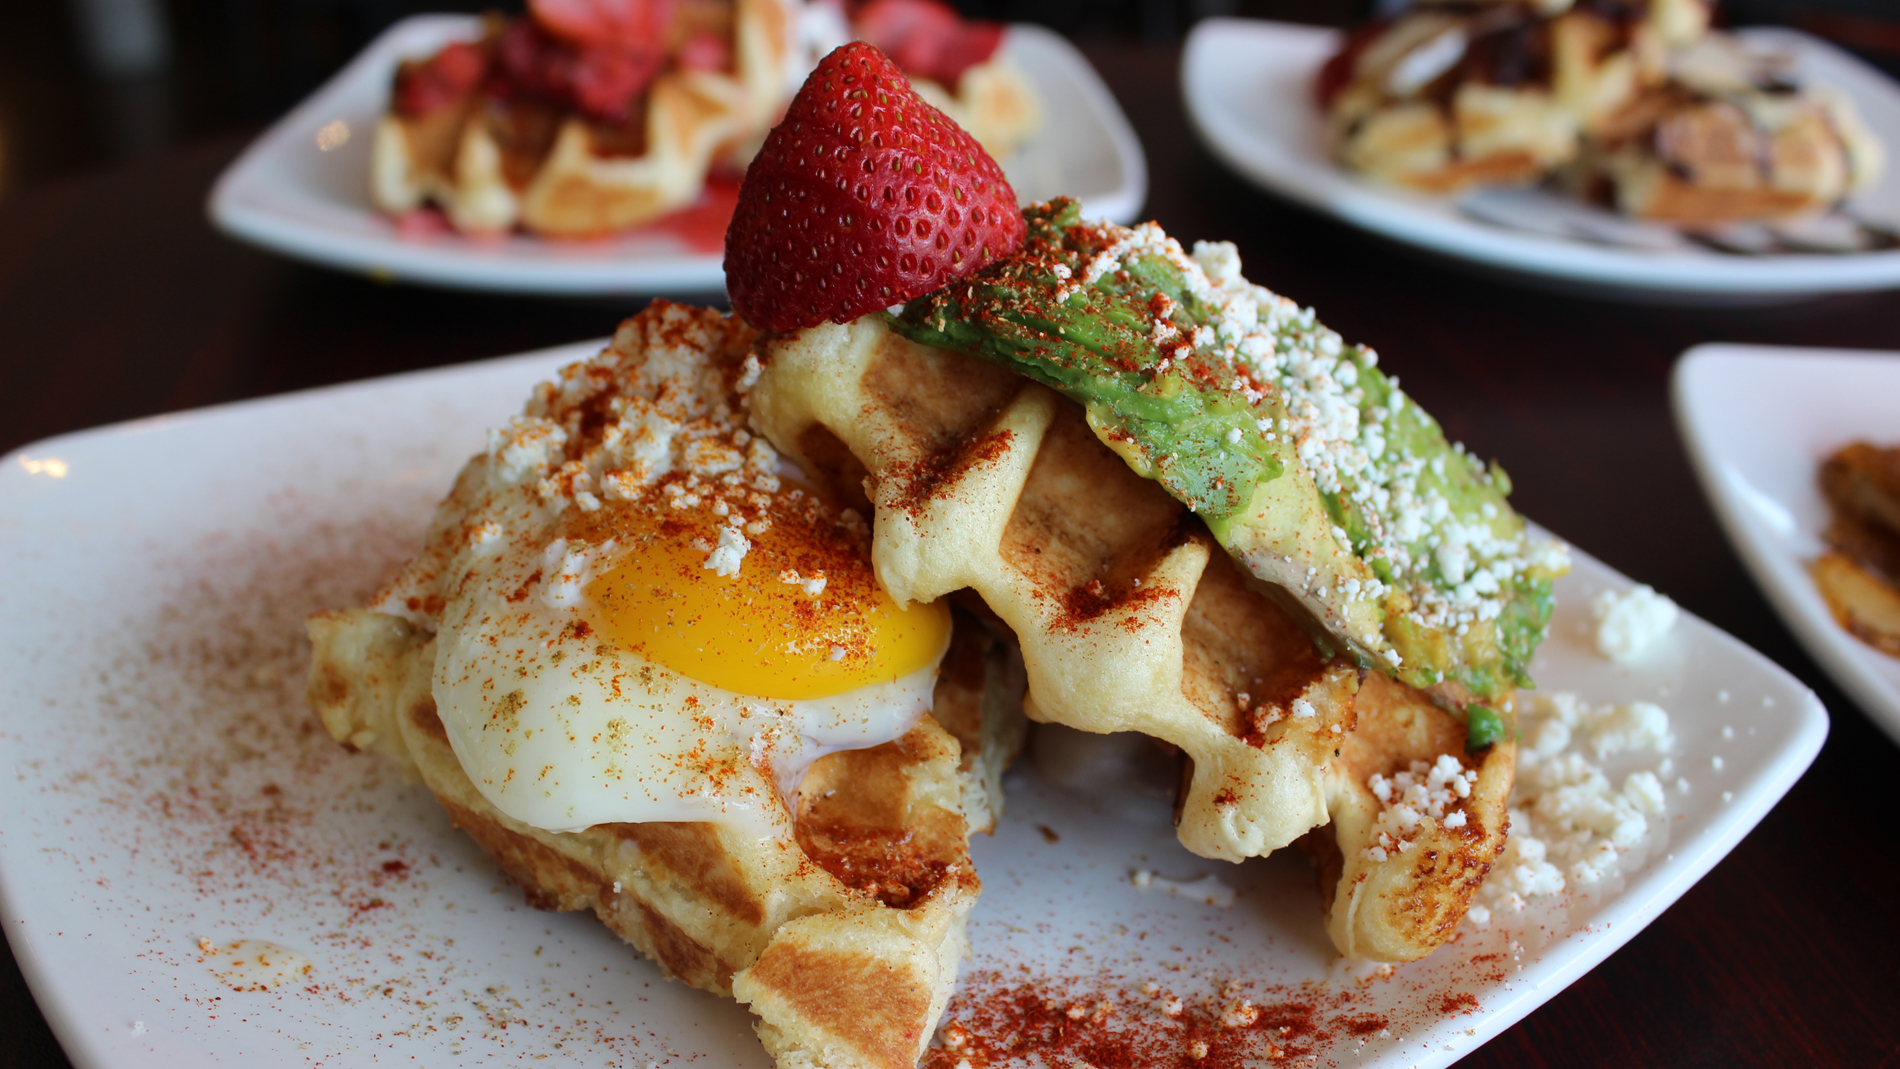 a waffle with avocado and an overeasy egg